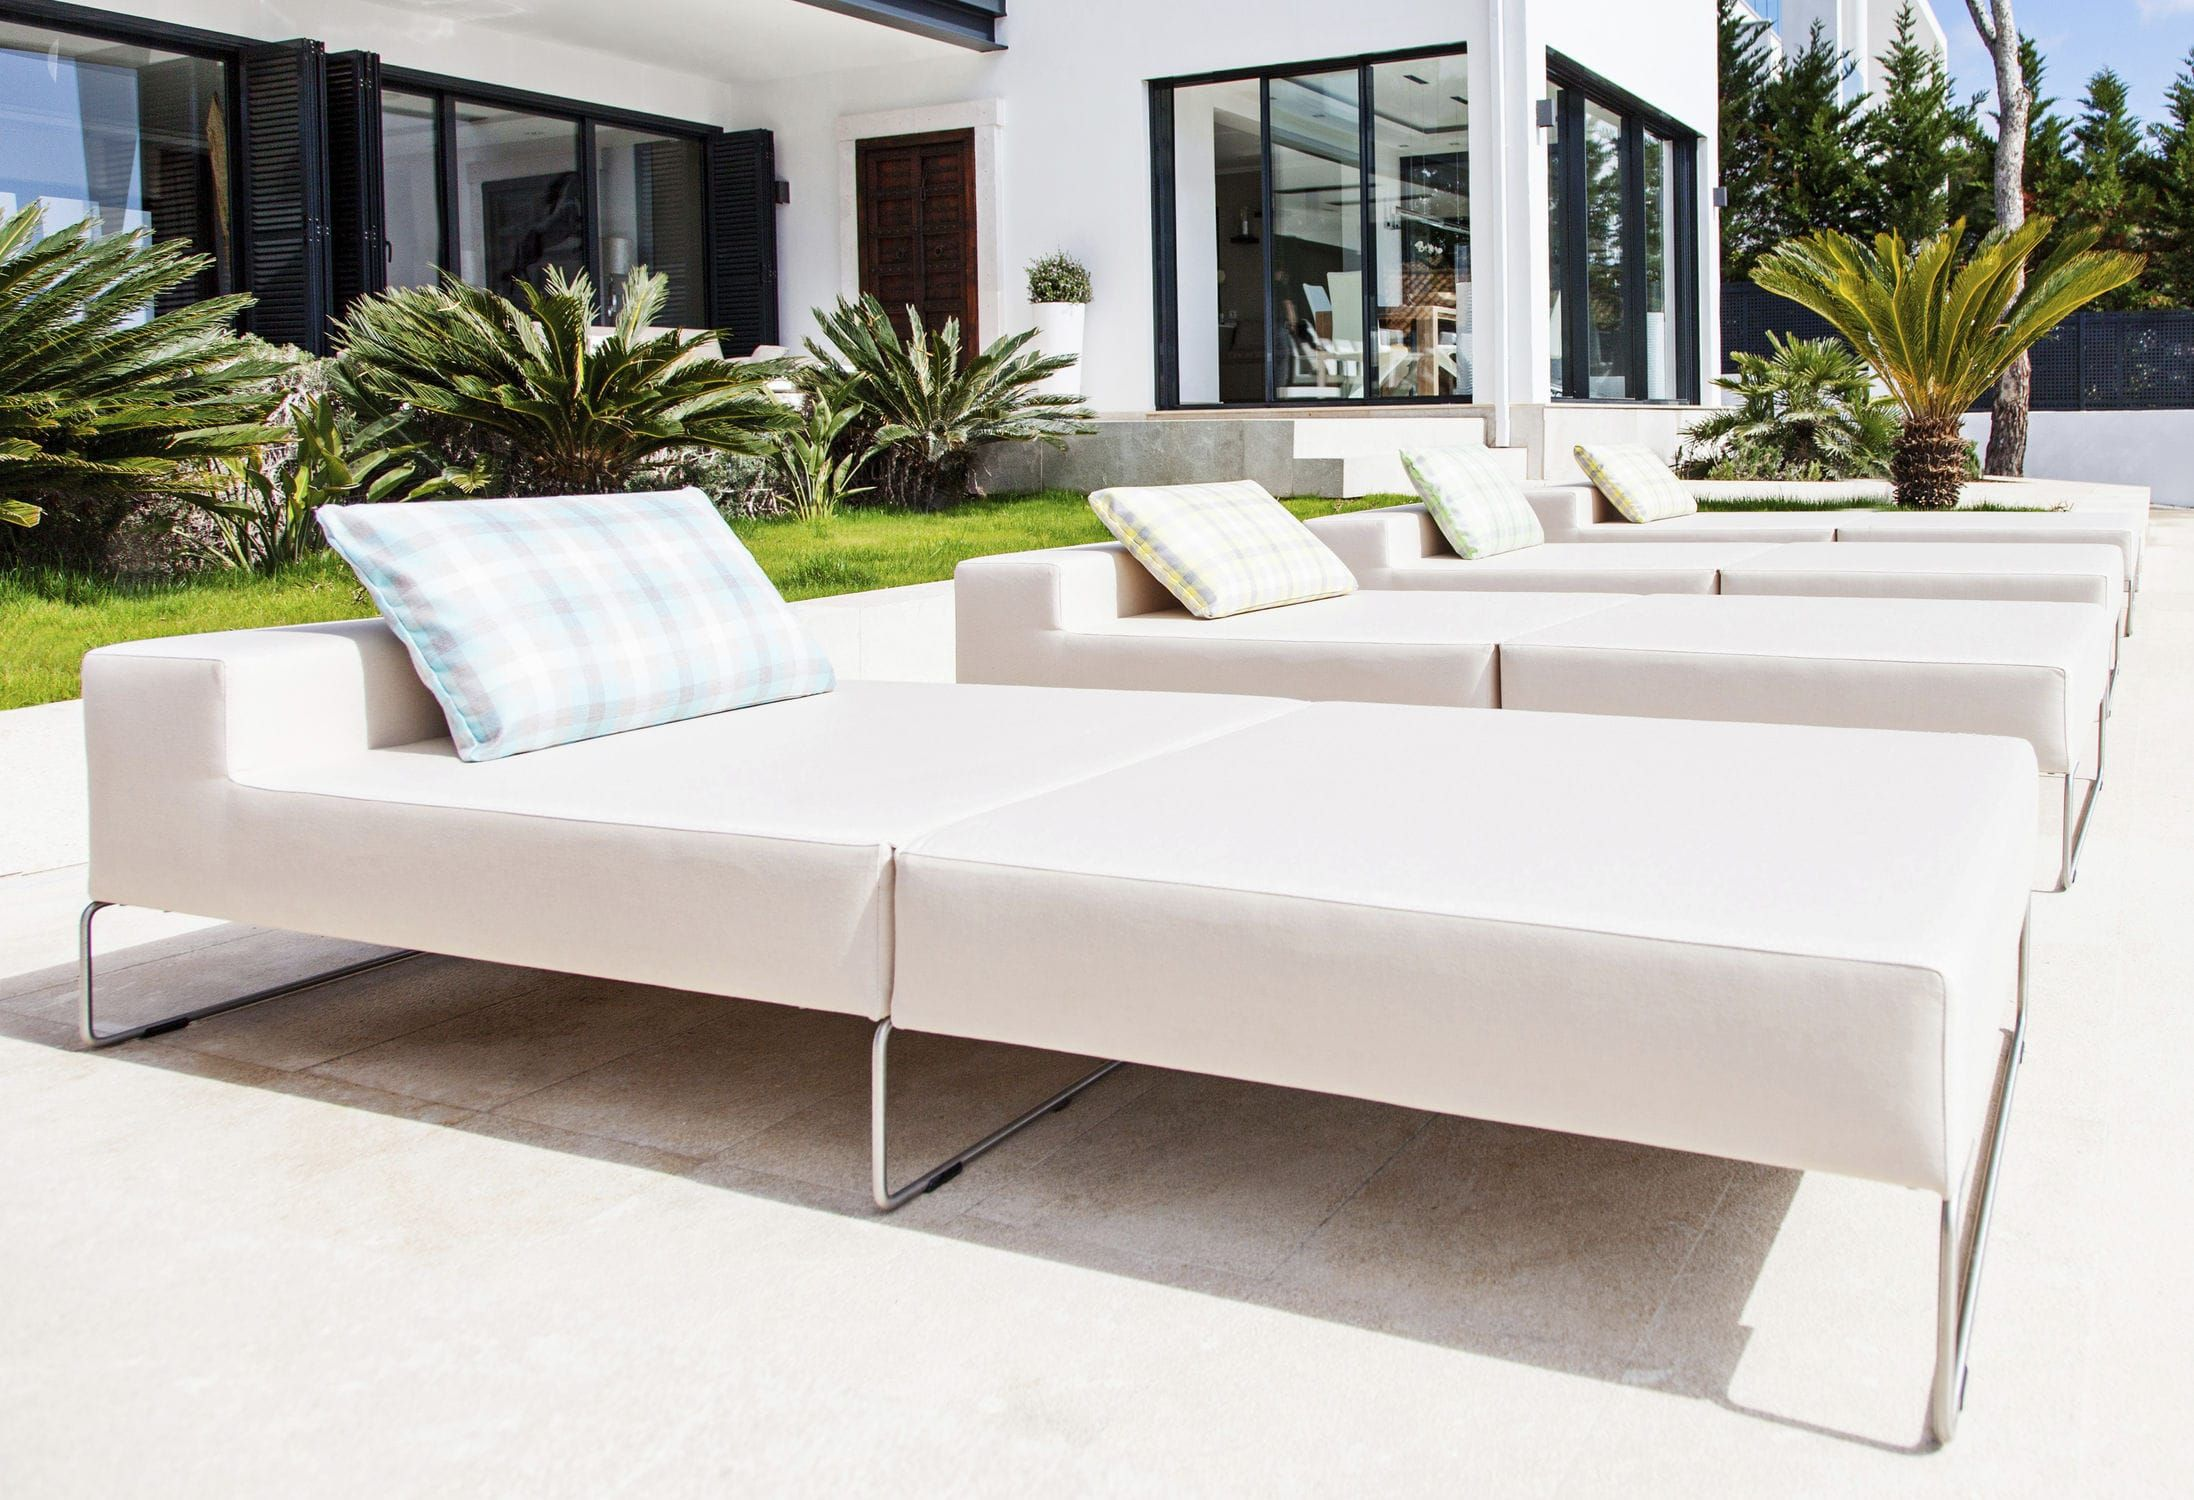 Contemporary lounge chair / stainproof / waterproof